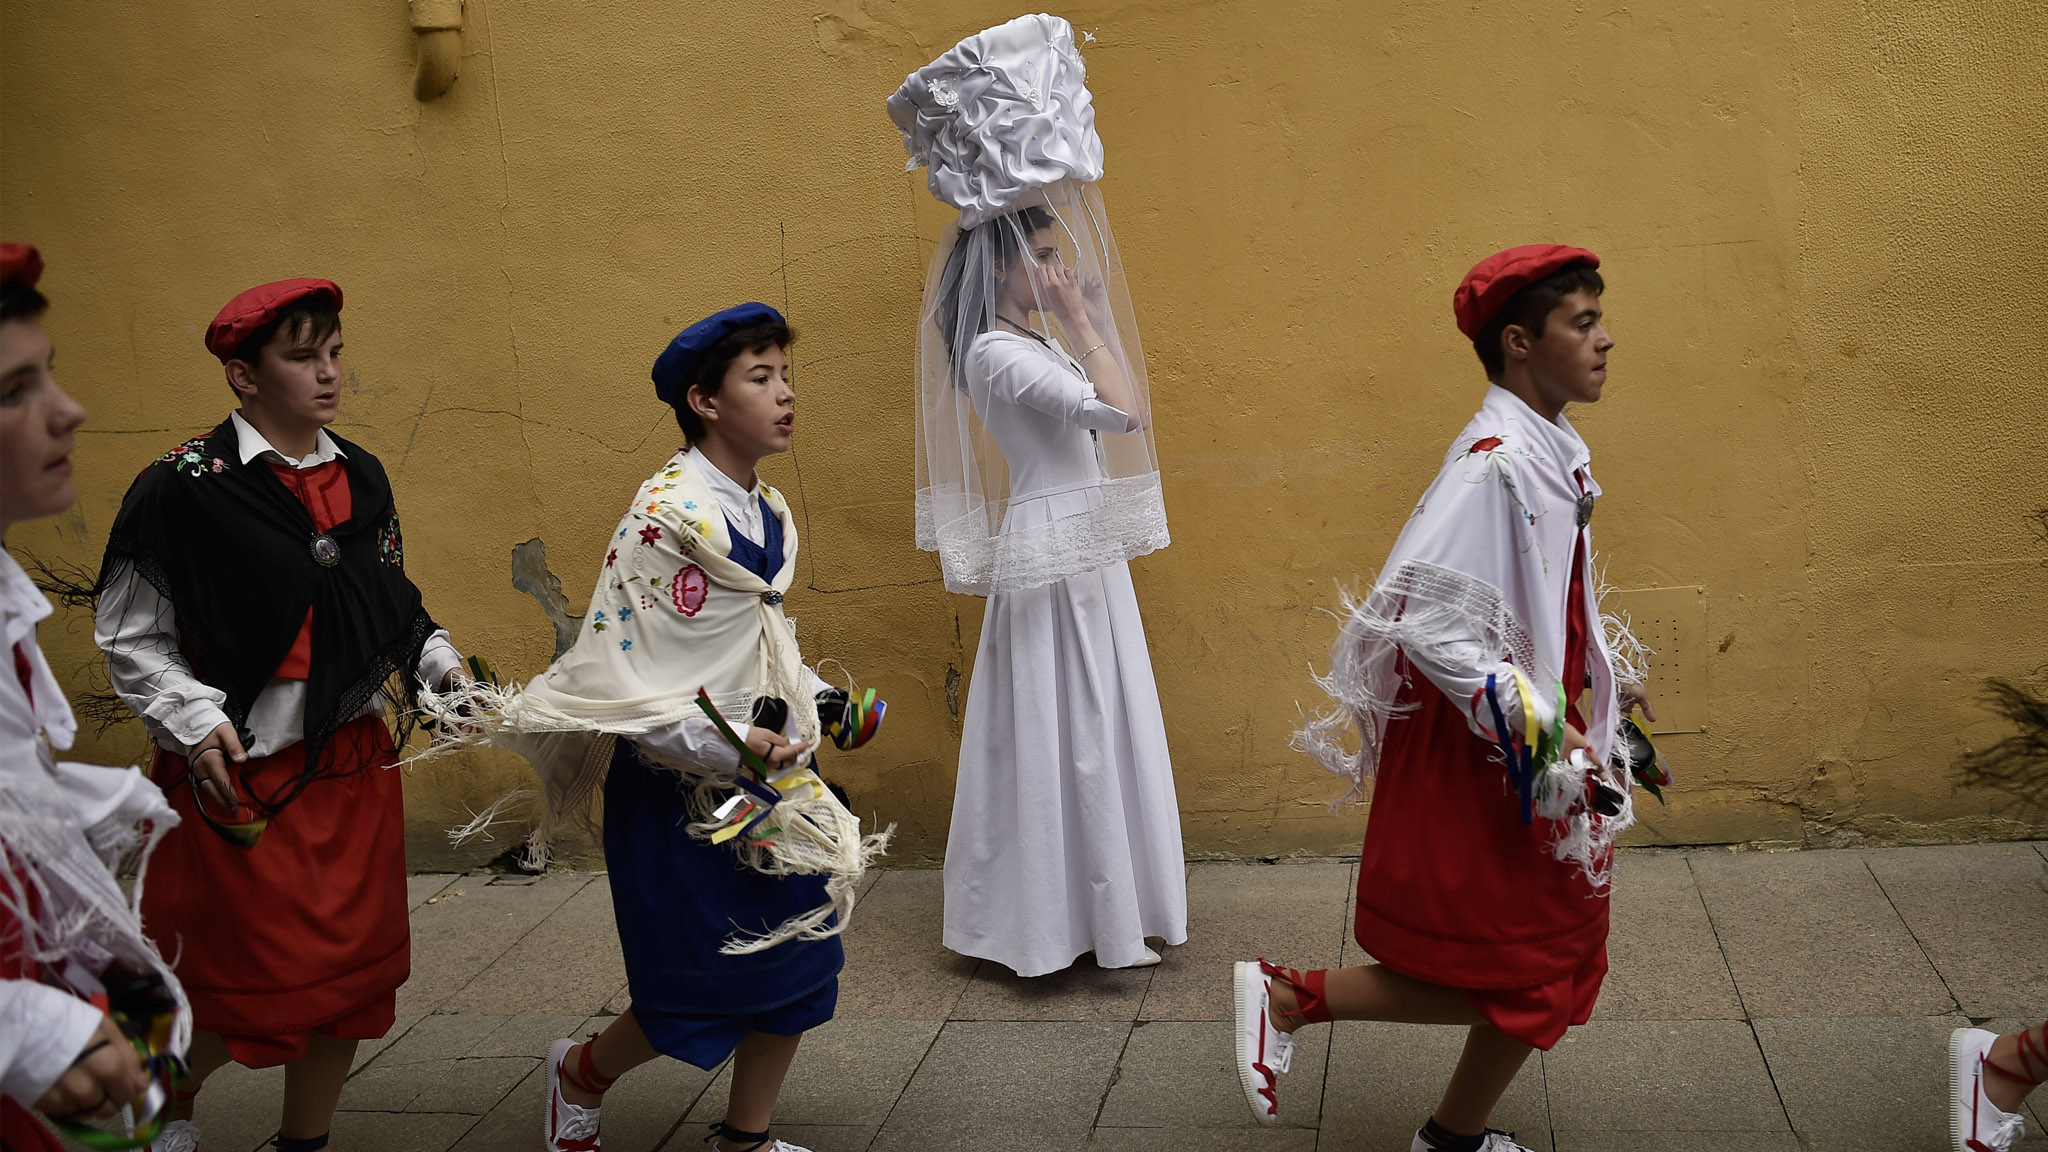 A participant in the ''Bread Procession of the Saint'' takes part in a ceremony in honor of Domingo de La Calzada Saint (1019-1109), in Santo Domingo de La Calzada, northern Spain, Wednesday, May 11, 2016. Every year during spring season, ''Las Doncellas'' (White Virgins), hold a basket on their head covered with white cloth while they walk along this old village in honor of the saint.